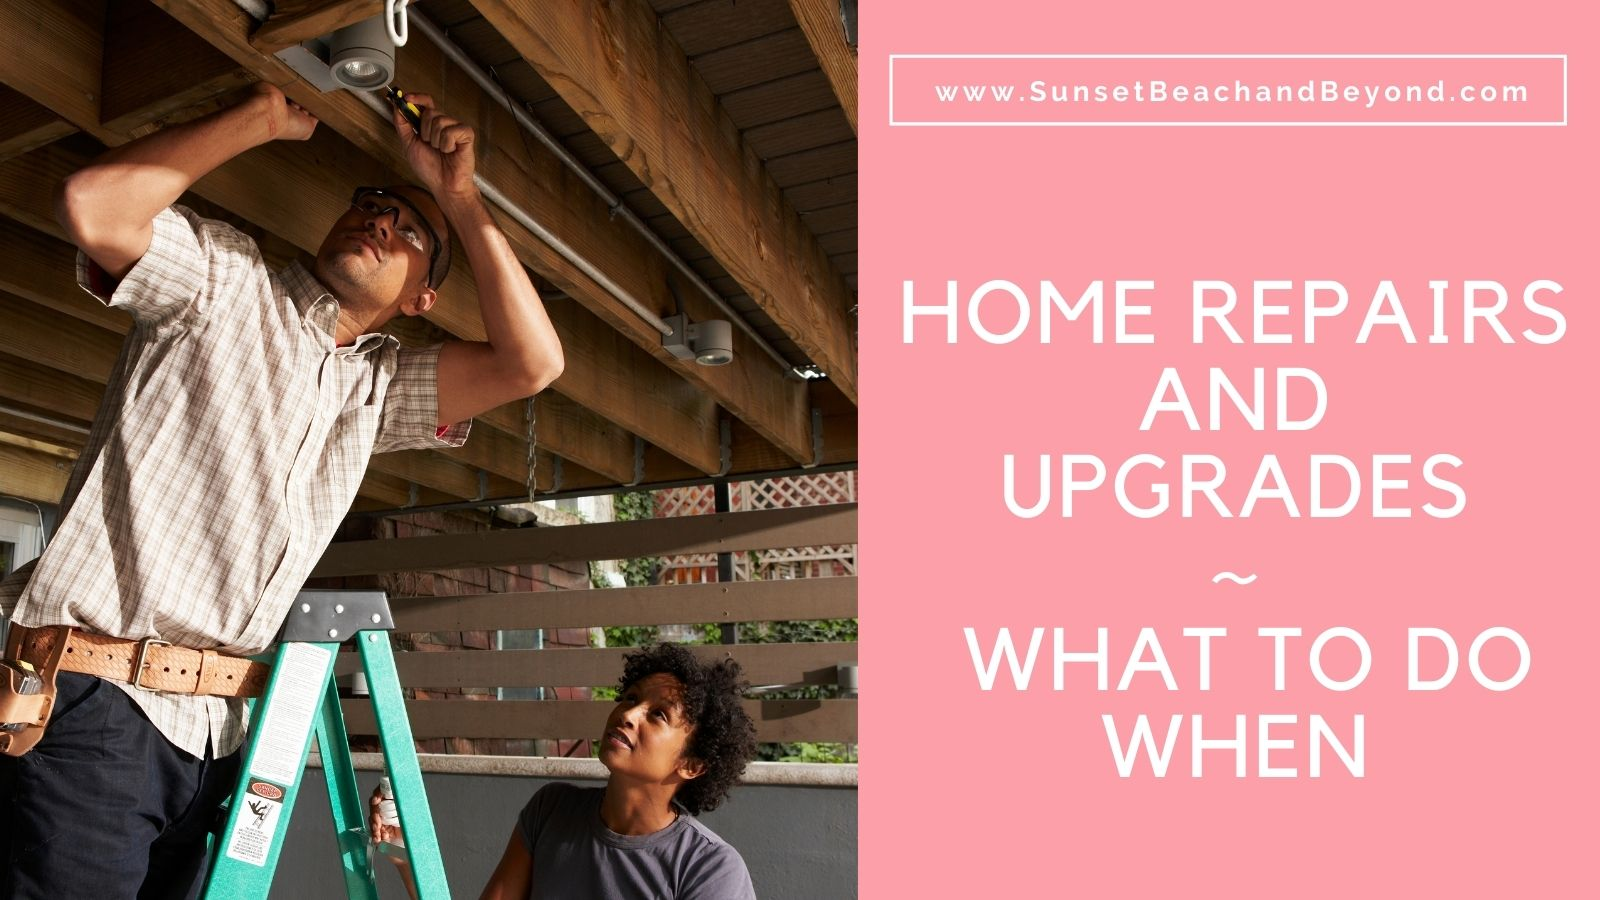 Home Repairs and Upgrades - What to do When